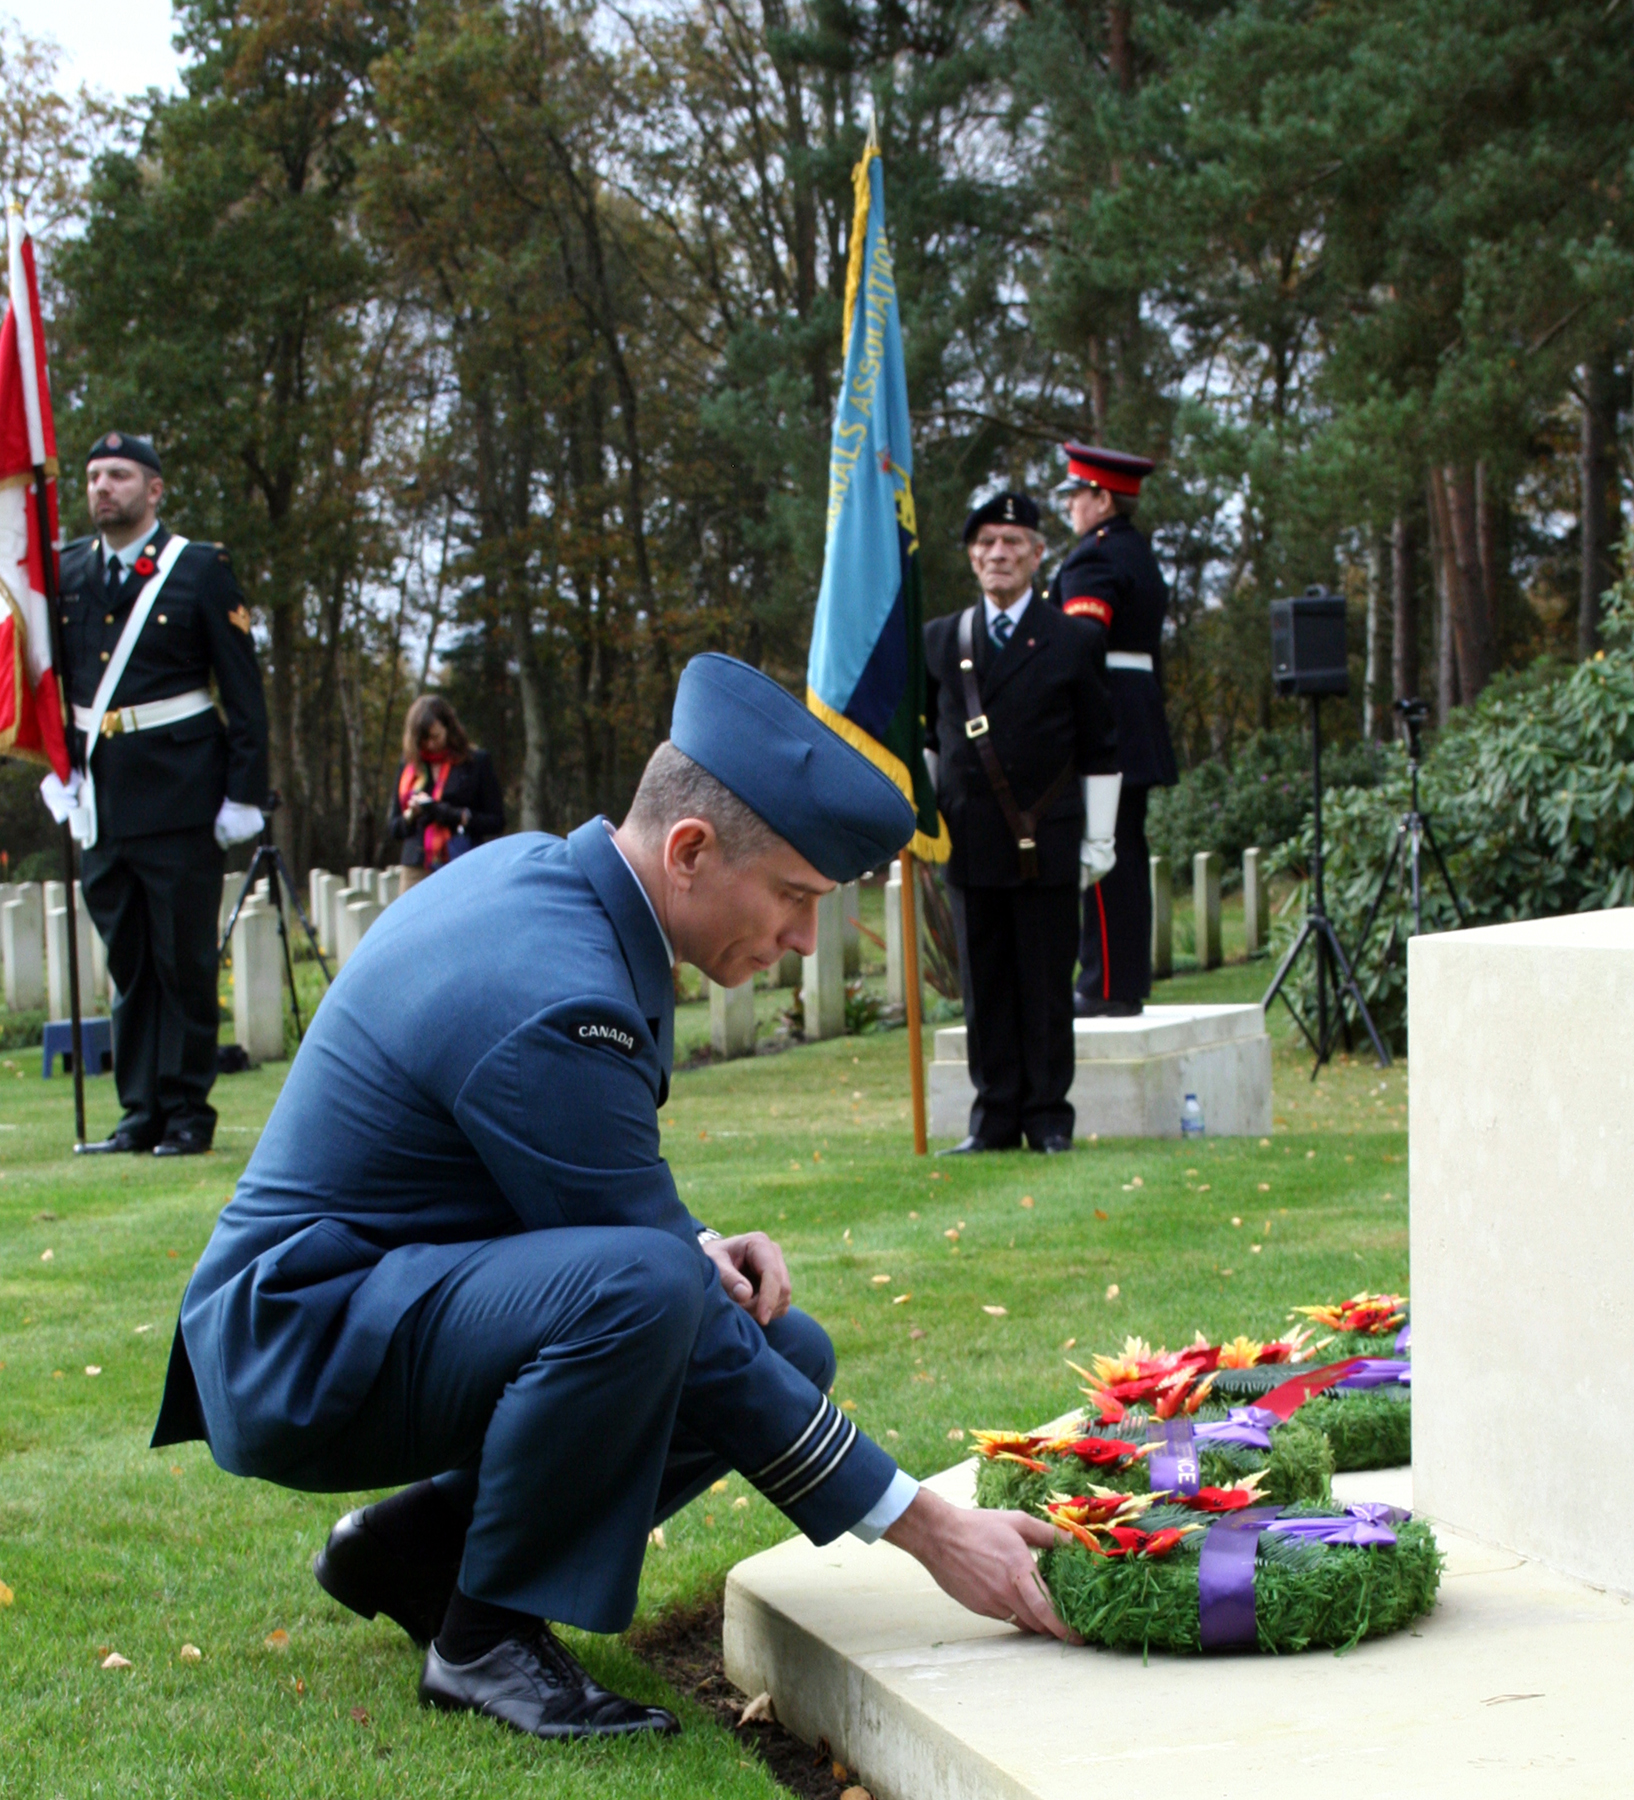 Lieutenant-Colonel Lonnie Fleischhacker, the senior Canadian national representative at NATO's Allied Maritime Command Headquarters in Northwood, United Kingdom, places a wreath at the Canadian cenotaph in Brookwood Military Cemetery, located 48 kilometres from London in Surrey, where about 2,400 Canadians are interred. Remembrance Day ceremonies are held annually at this location, and include dignitaries and civilian and military staff from the Canadian High Commission and Defence Liaison Staff (London), Canadian servicemen and servicewomen posted in the U.K. and their families, representatives from Canadian expatriate organizations and Canadian and British veterans groups, and members of the general public. The setting is a moving venue in which to honour Canadians lost in service to their country overseas. PHOTO: Lieutenant-Commander Paul Seguna